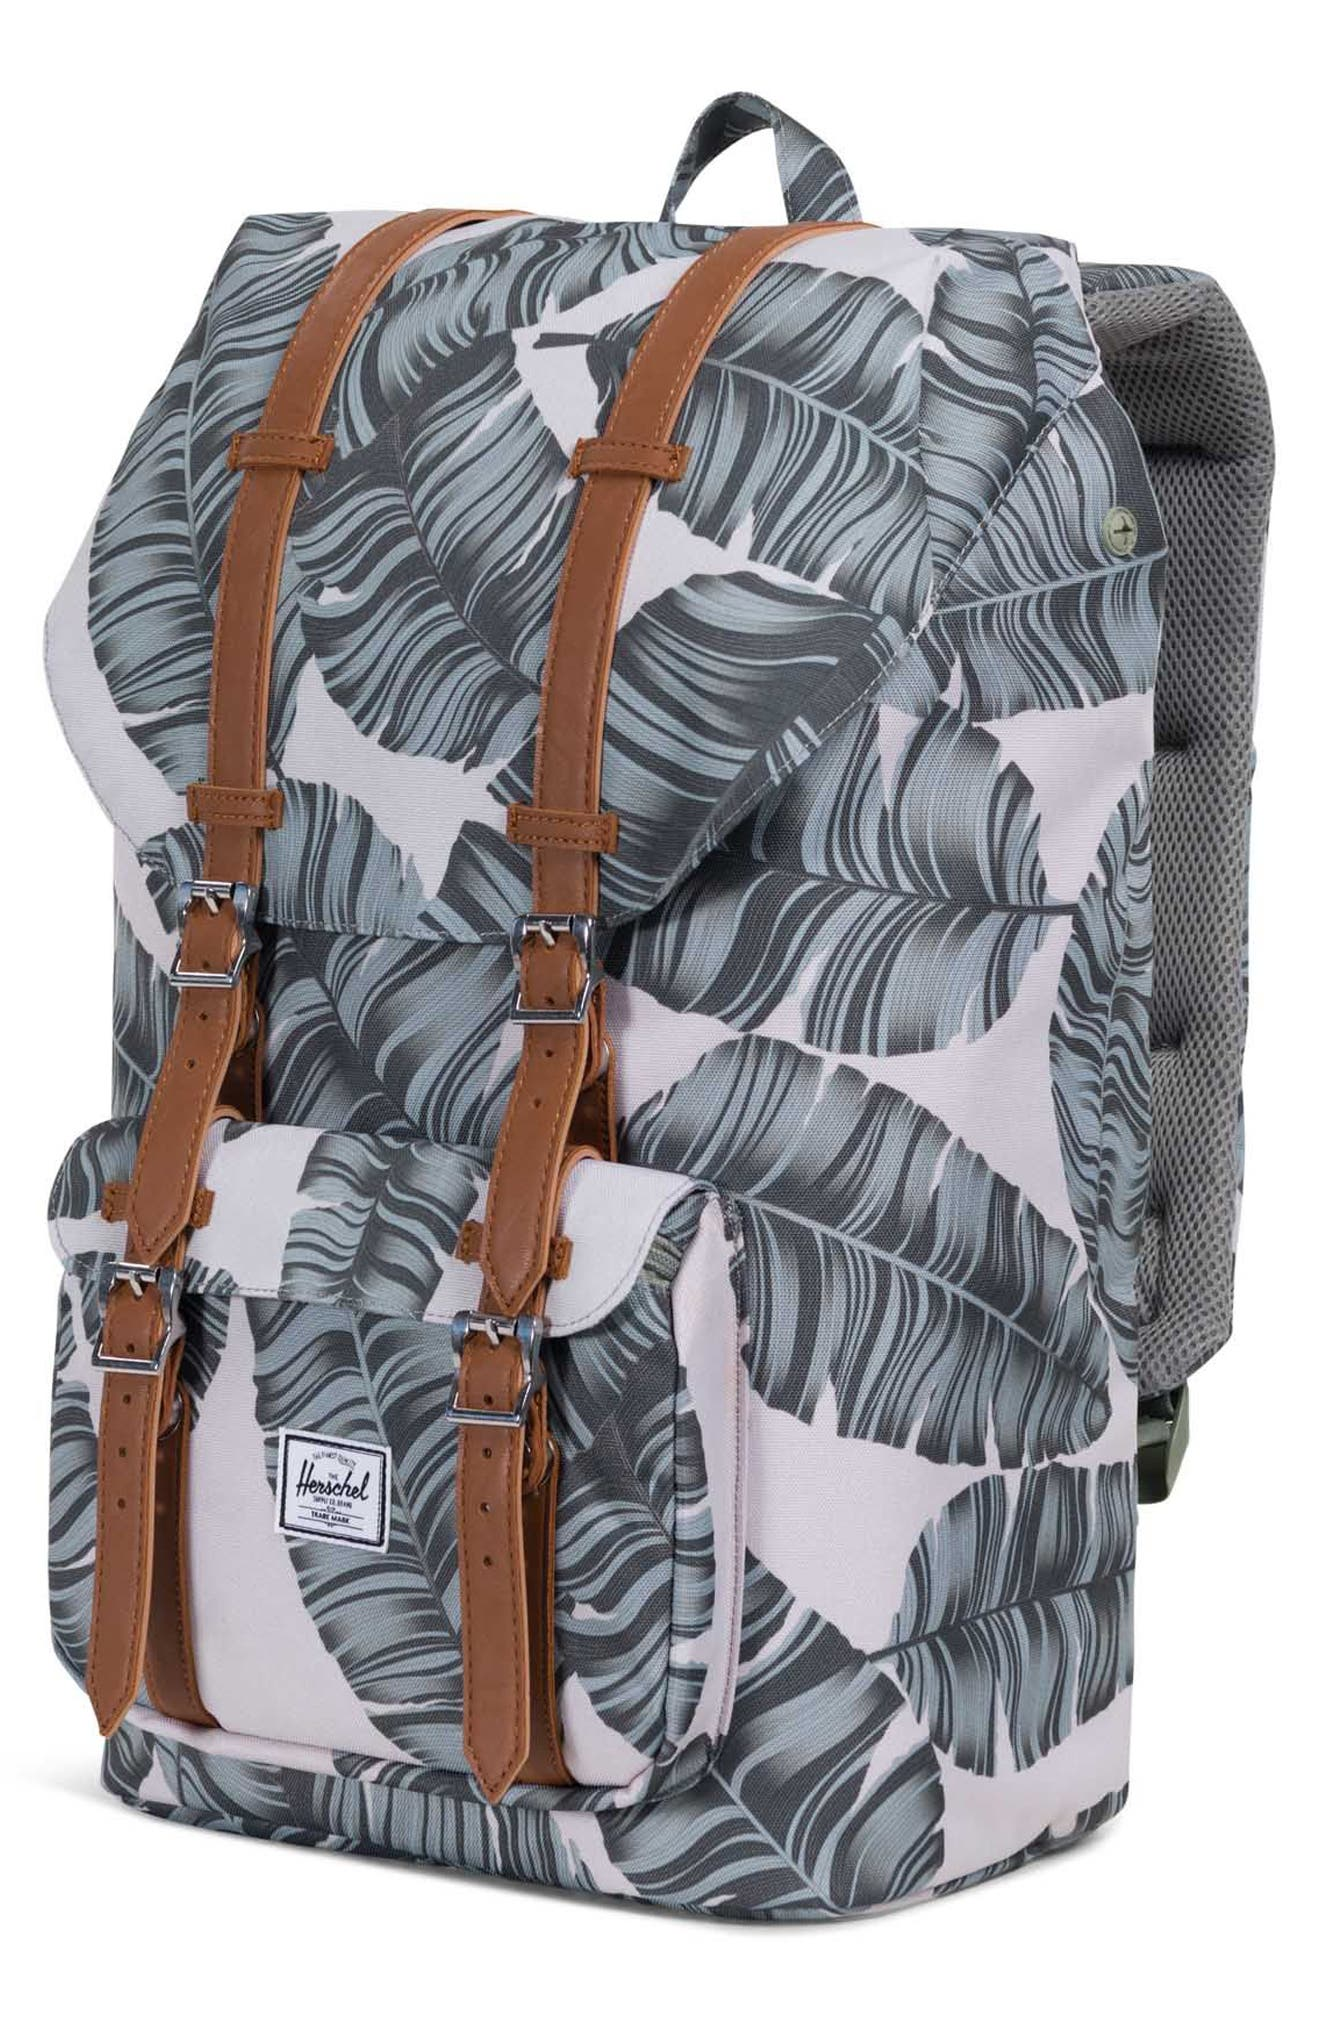 'Little America' Backpack,                             Alternate thumbnail 4, color,                             Silver Birch Palm/ Tan